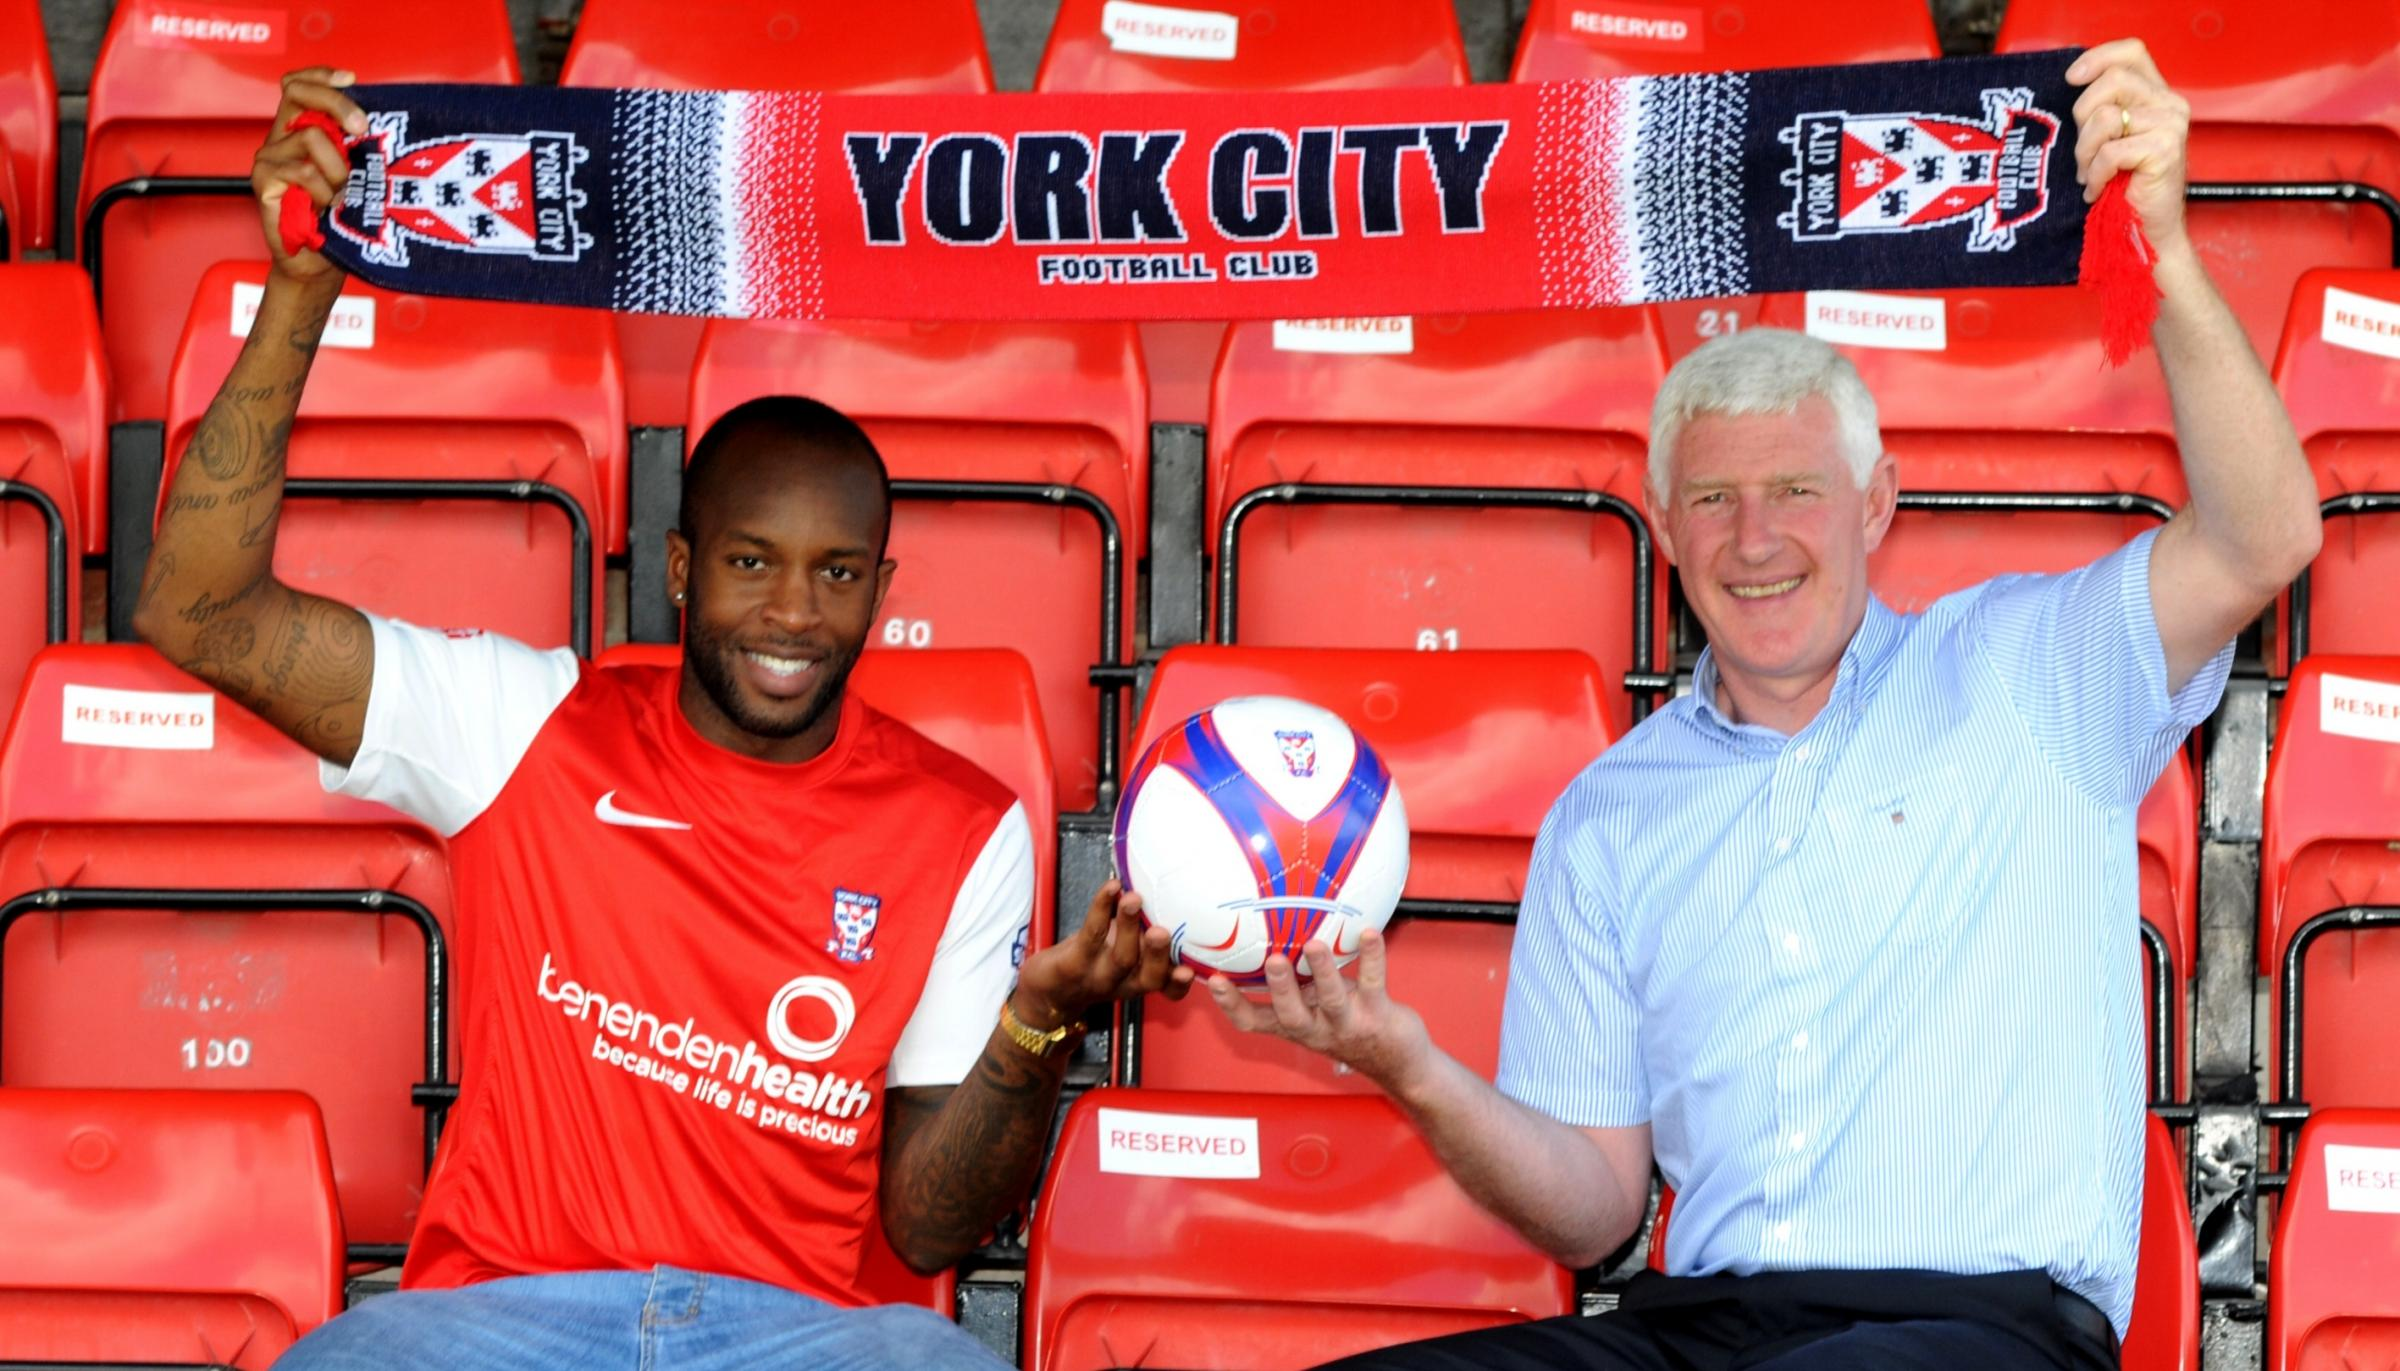 New signing Anthony Straker is pictured with York City manager Nigel Worthington after signing a two-year contract at Bootham Crescent